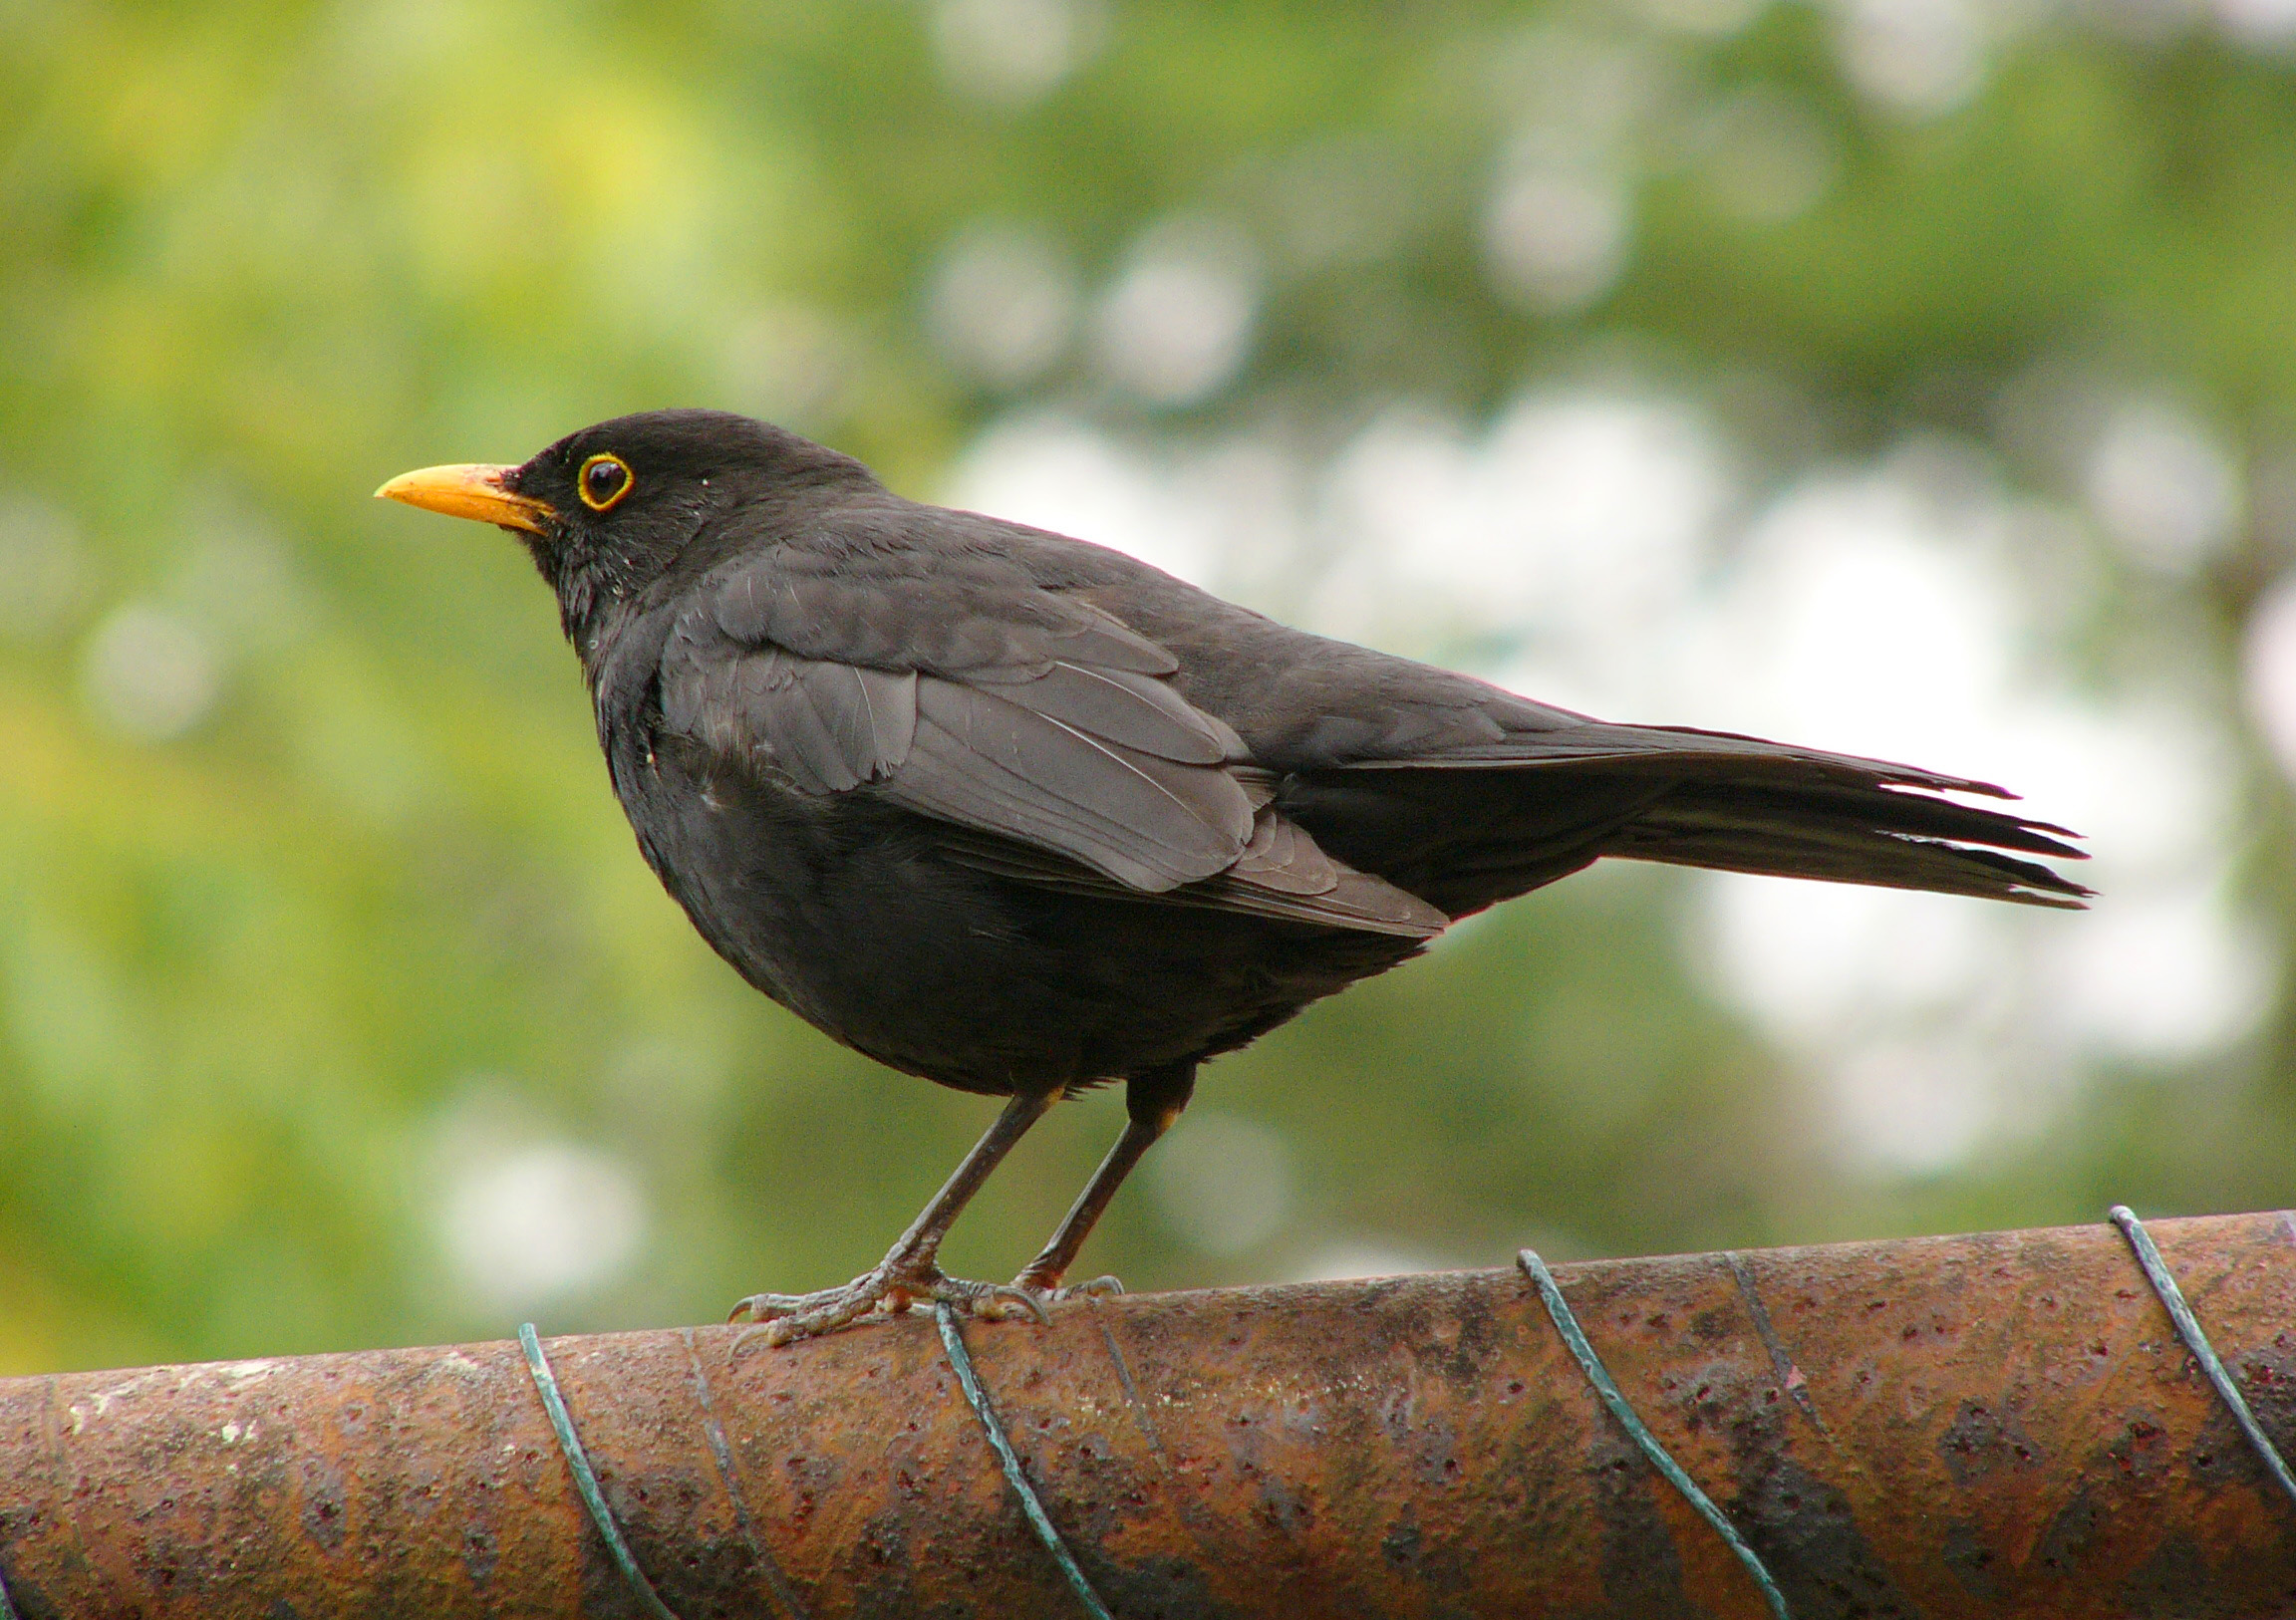 Vogel Schwarz File:blackbird 2.jpg - Wikipedia